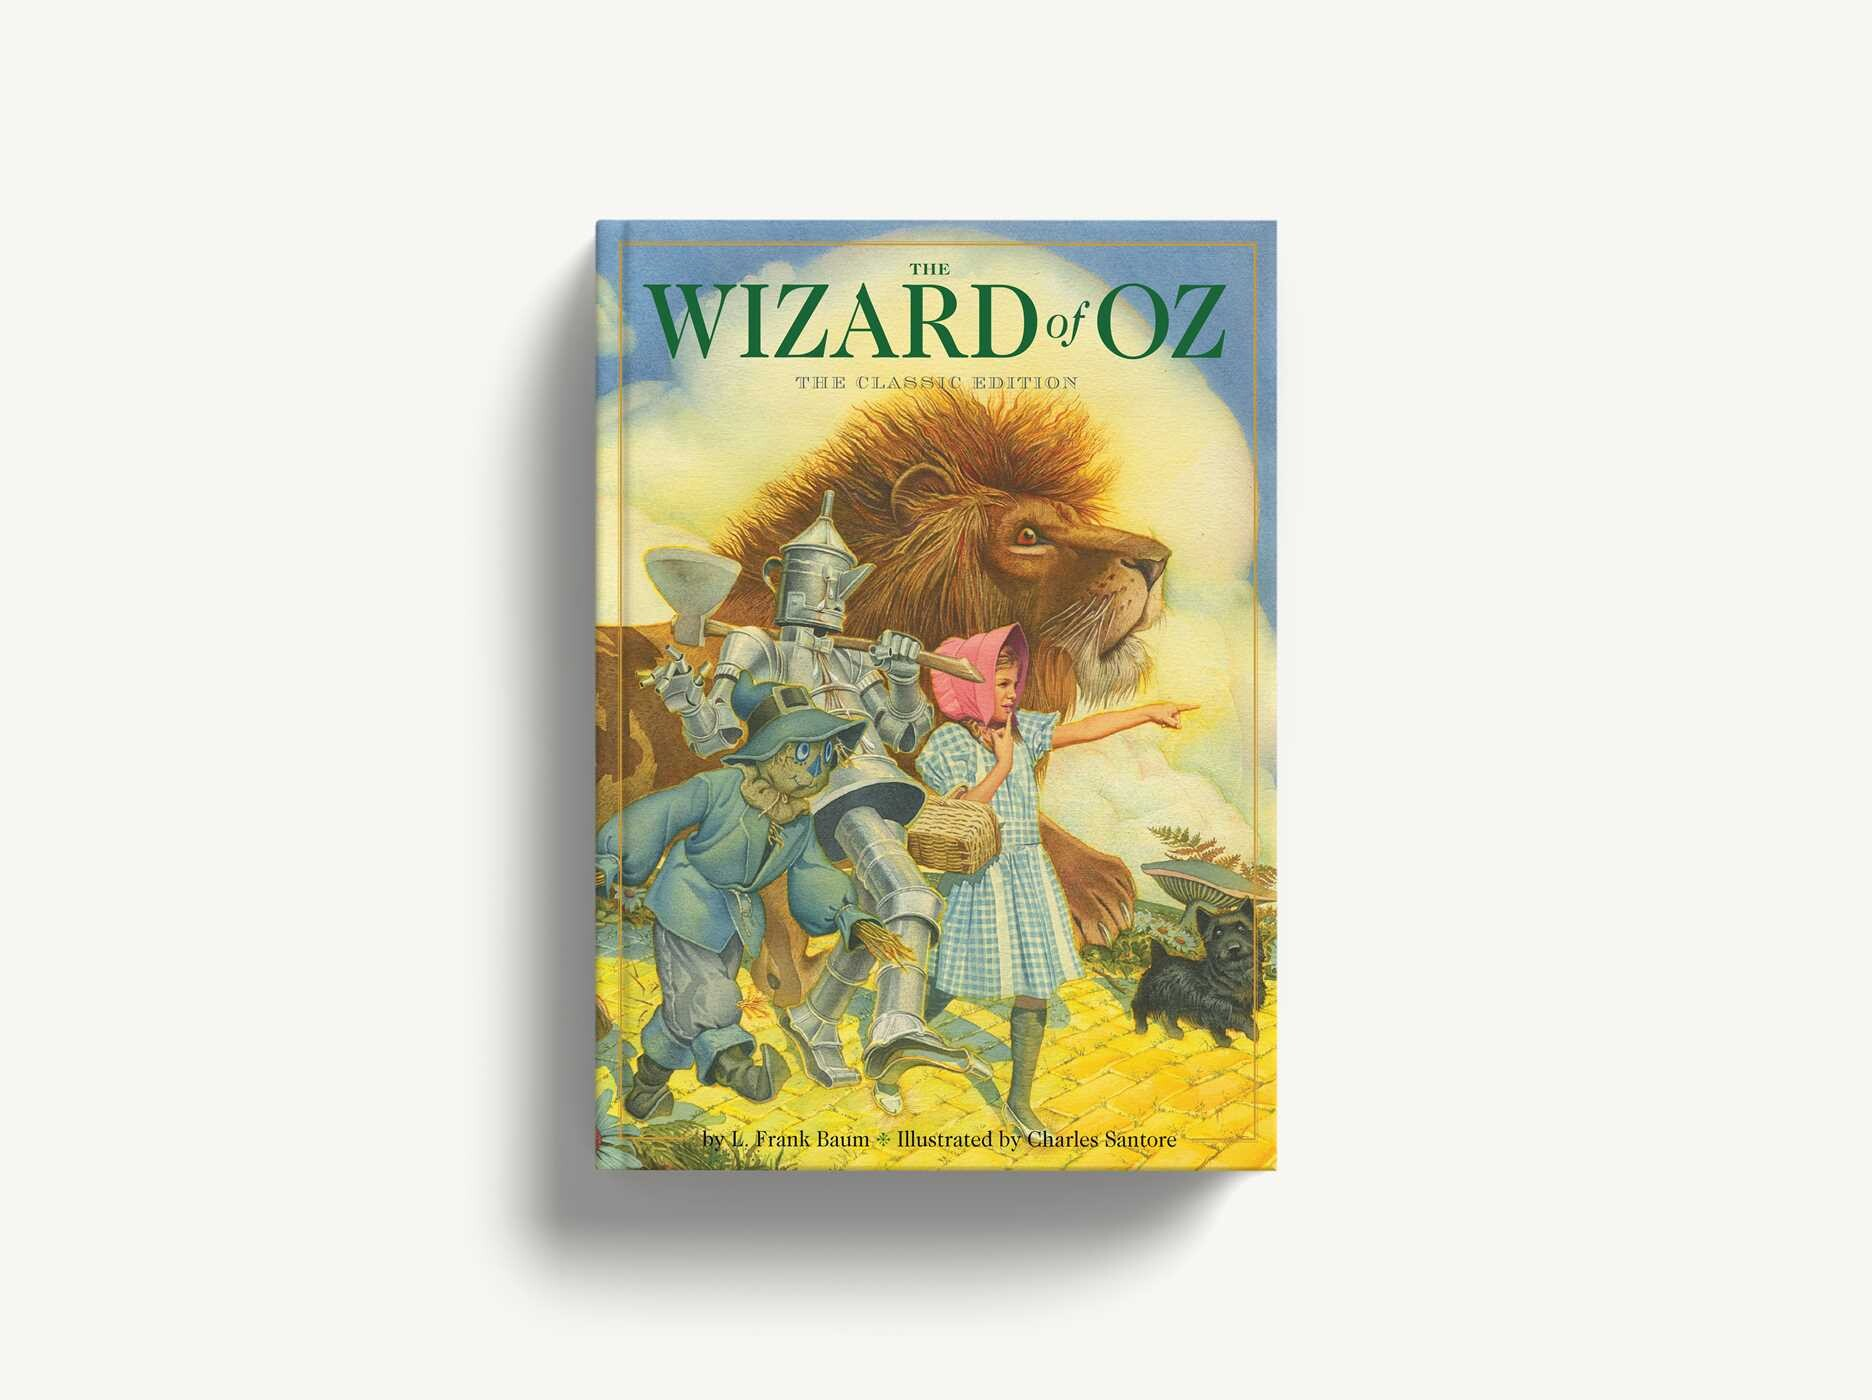 Wizard hd manual ebook array the wizard of oz ebook by l frank baum william wallace denslow rh simonandschuster fandeluxe Image collections